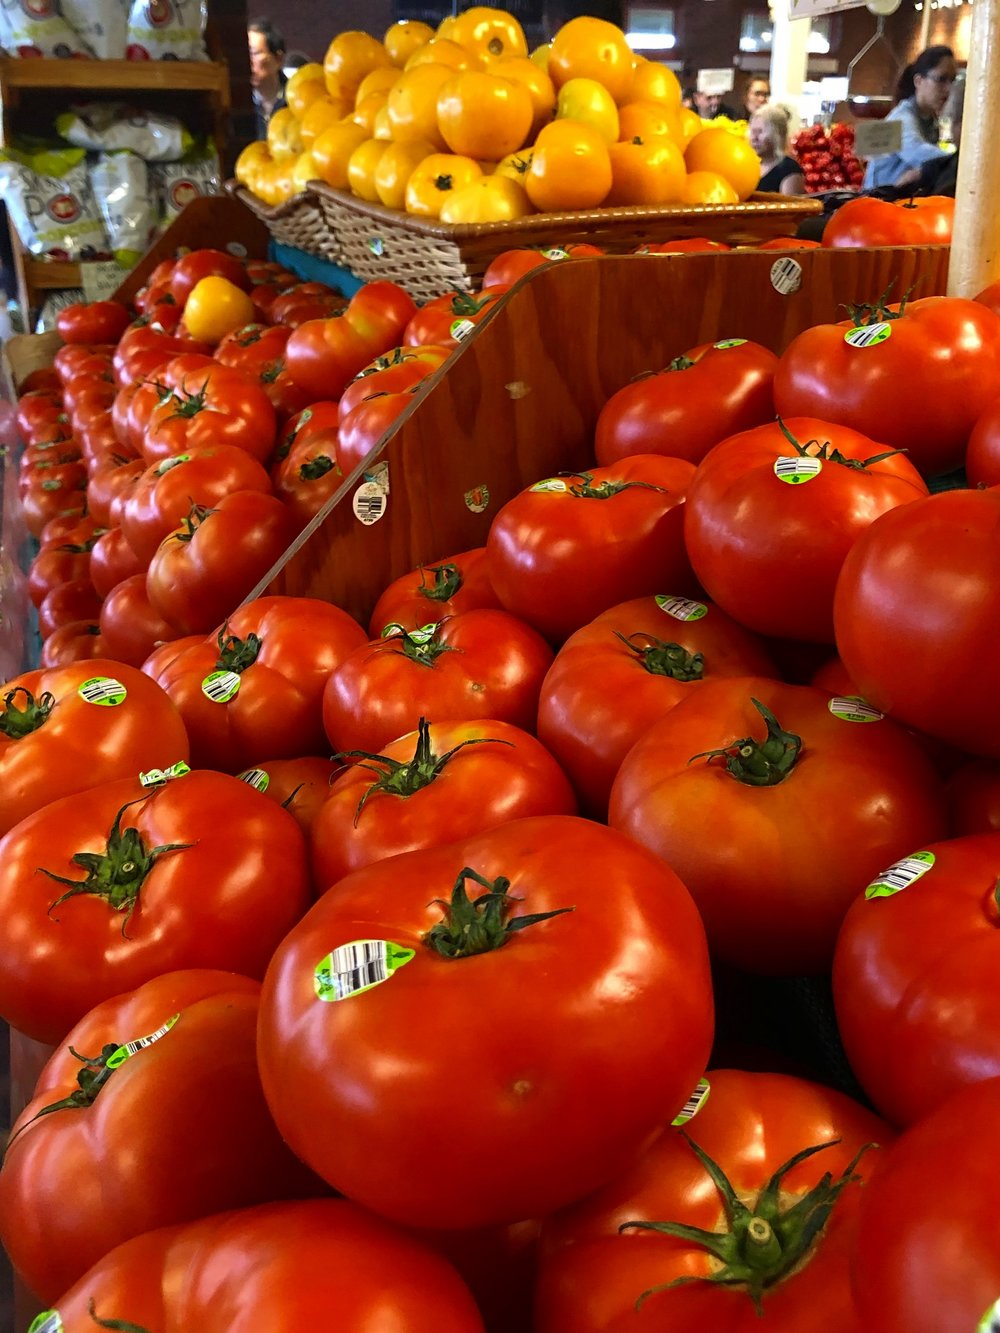 Tomatoes are on special this week at Russo's.